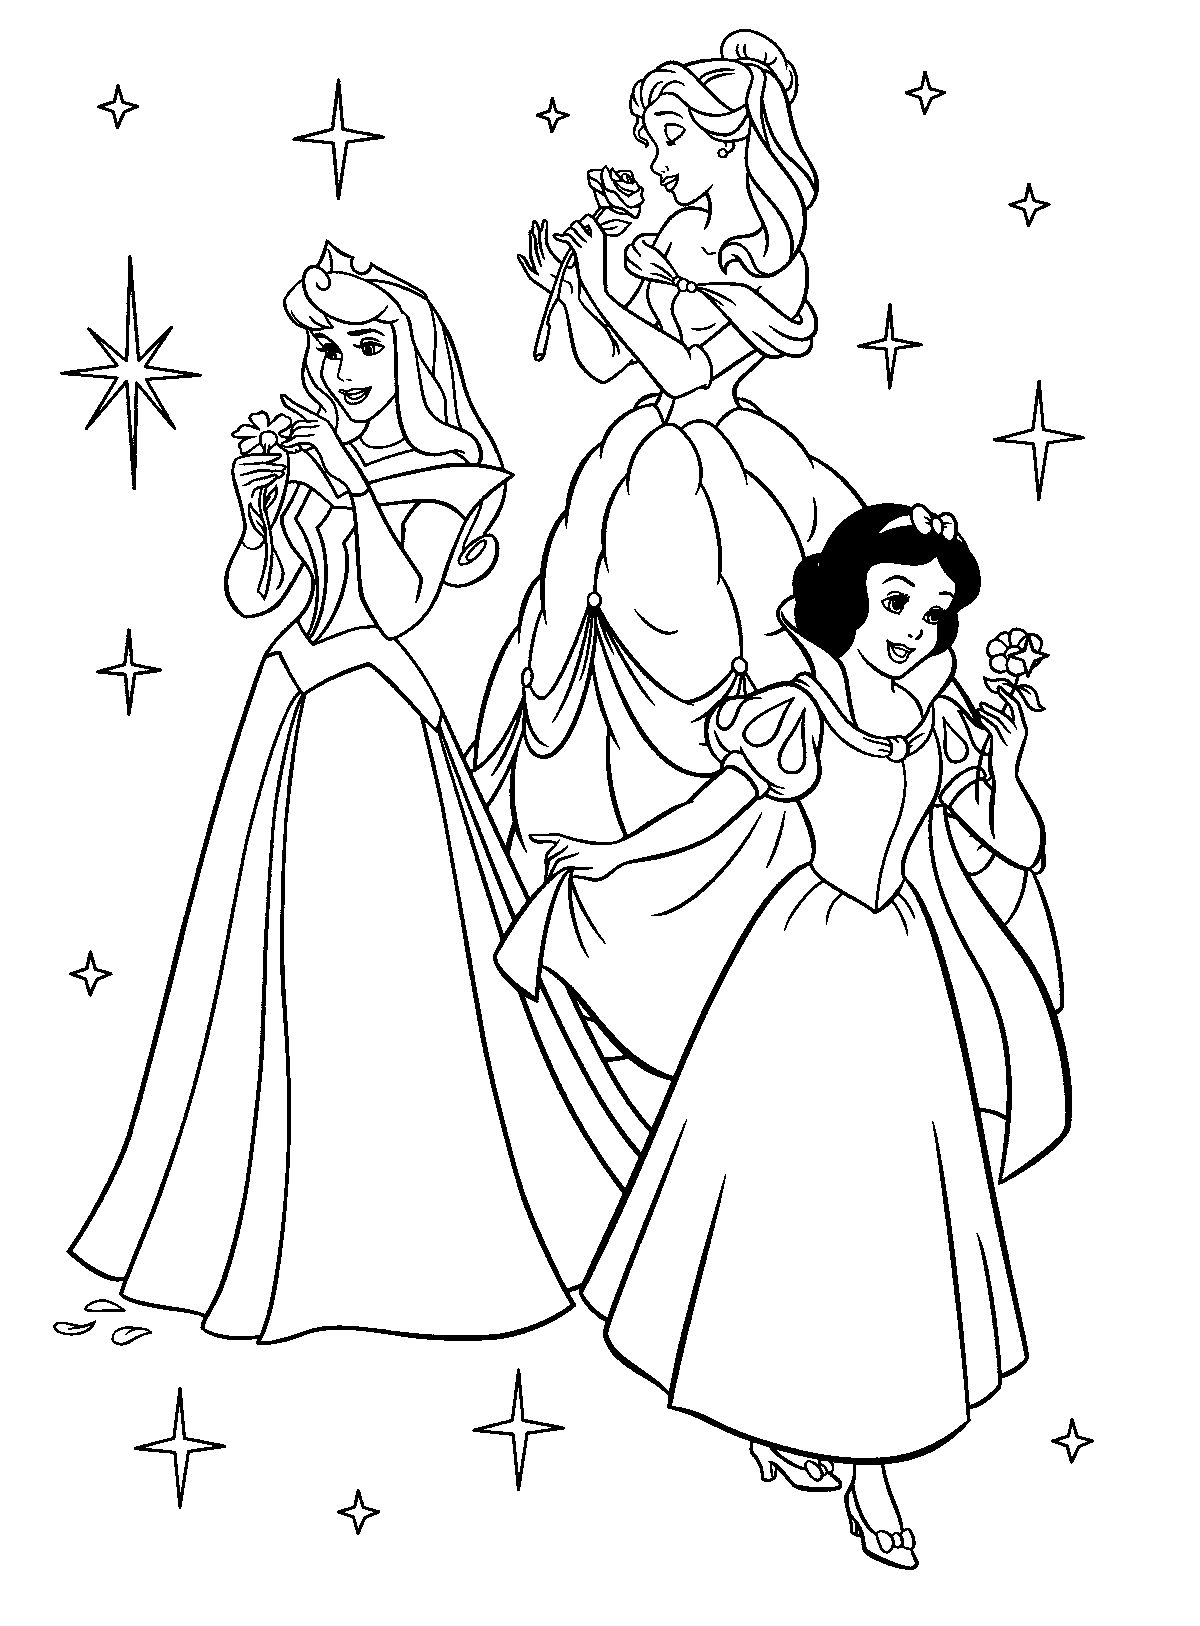 Free Printable Disney Princess Coloring Pages For Kids Disney Princess Coloring Pages Disney Coloring Pages Cinderella Coloring Pages